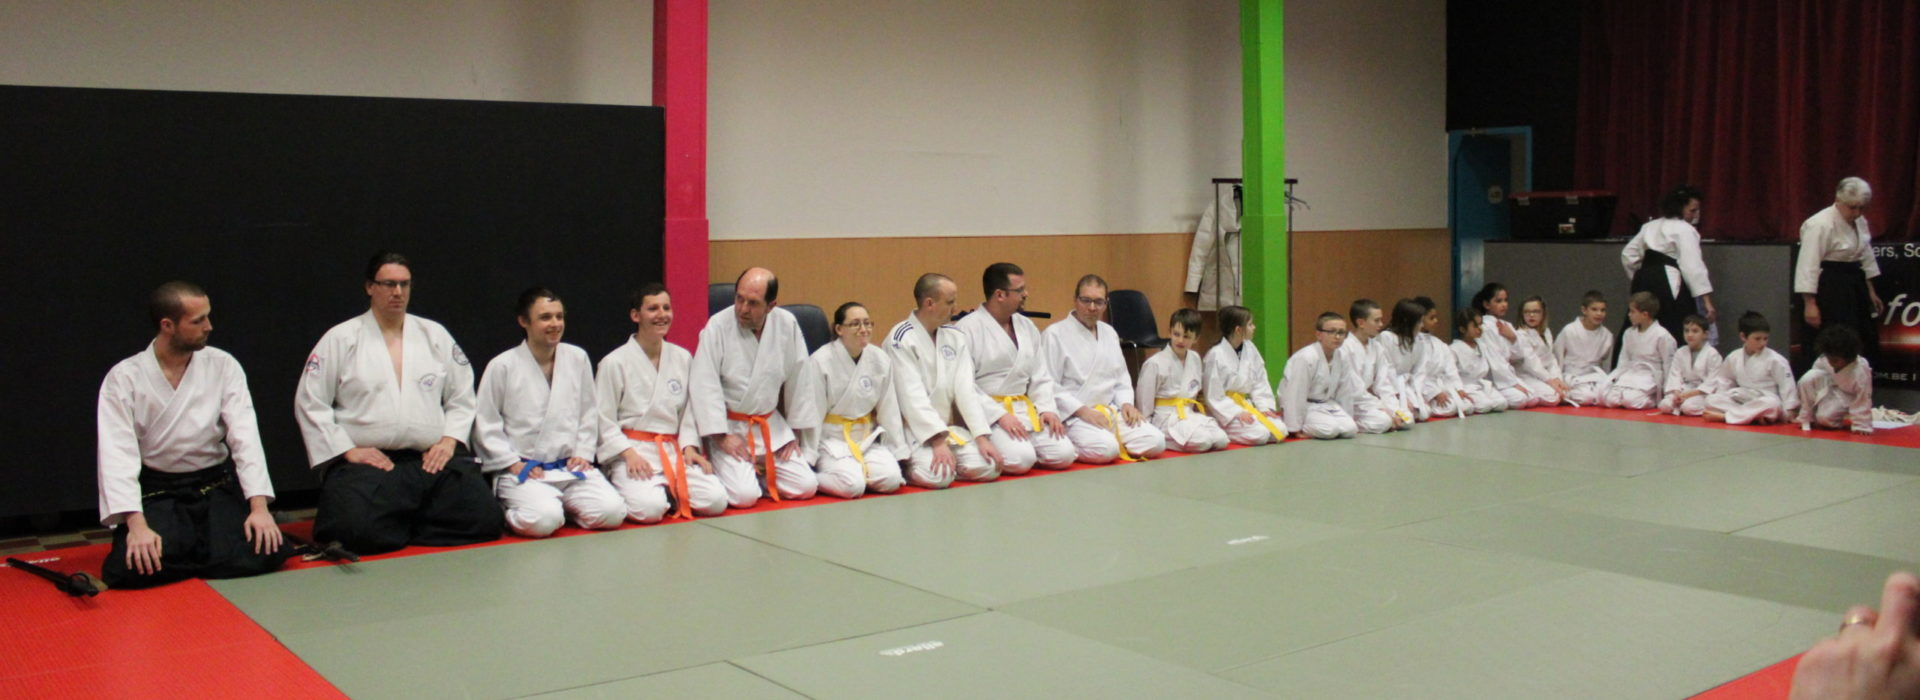 Ju-jutsu Traditionnel Flawinne